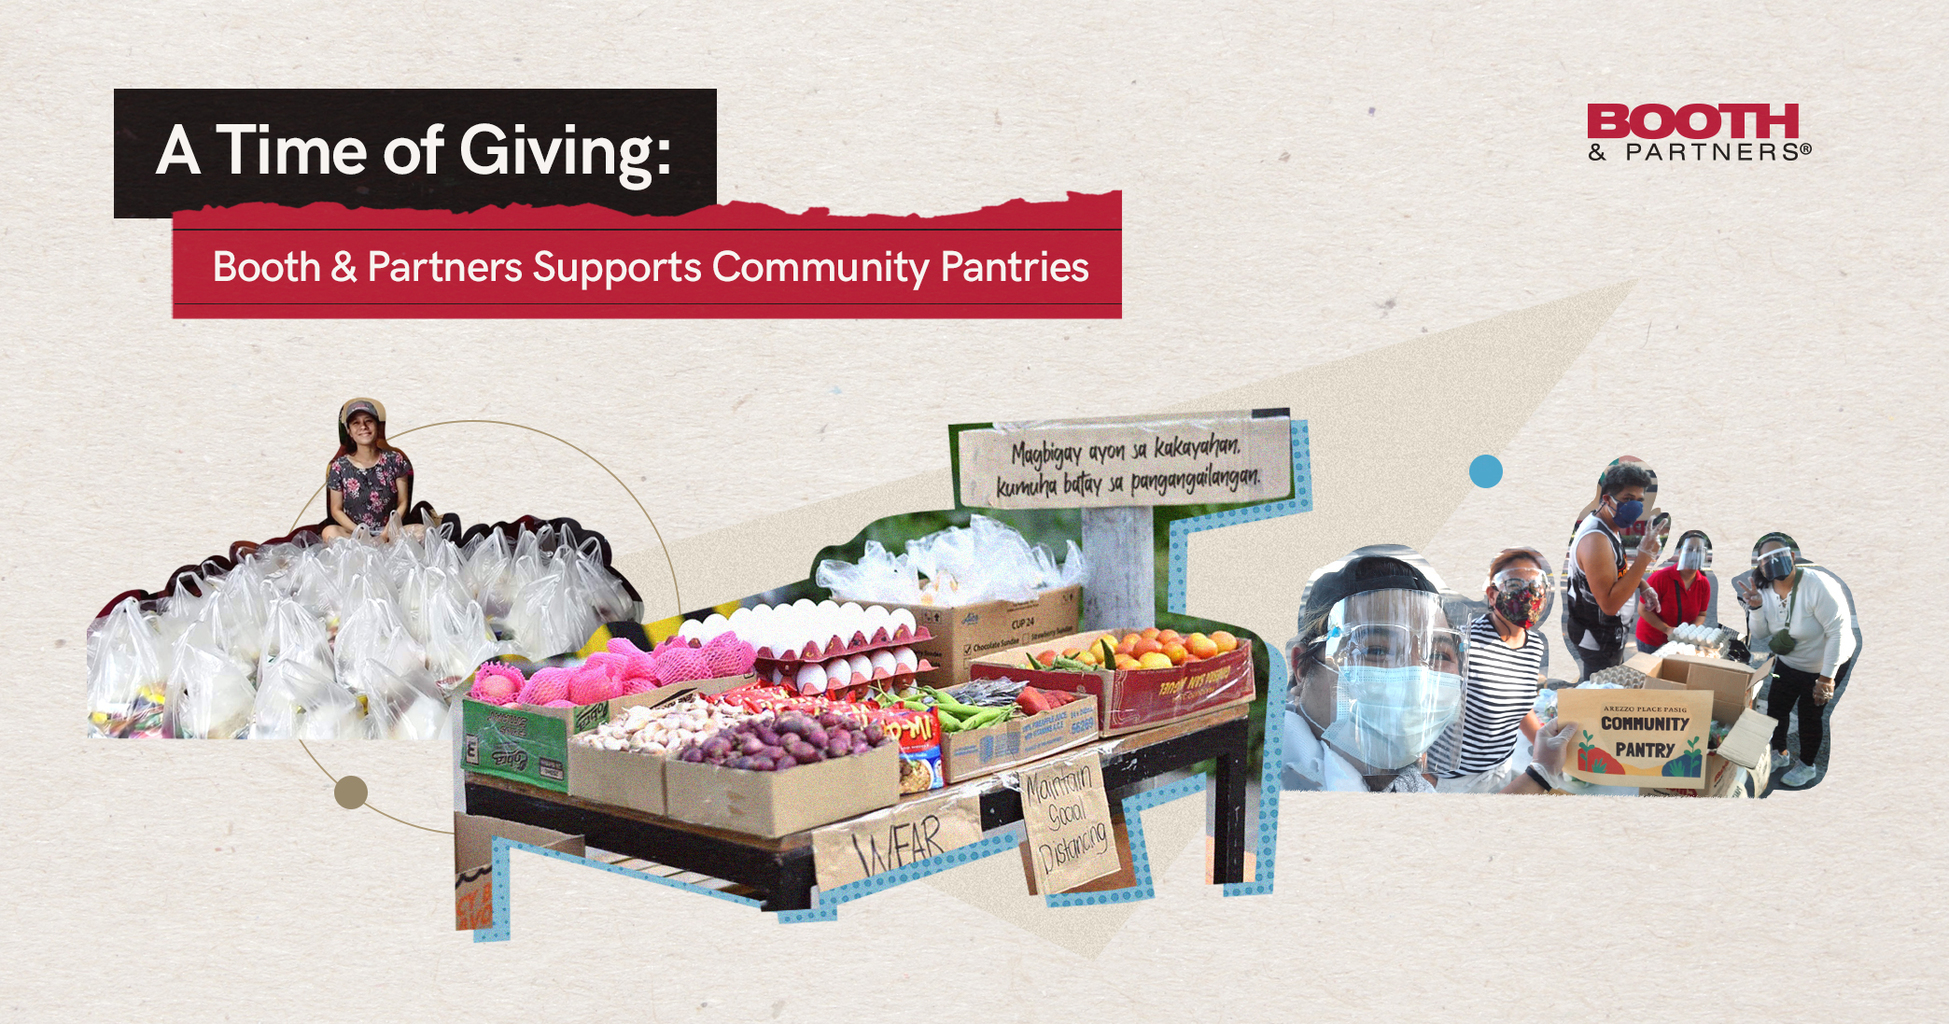 A Time of Giving: Booth & Partners Supports Community Pantries